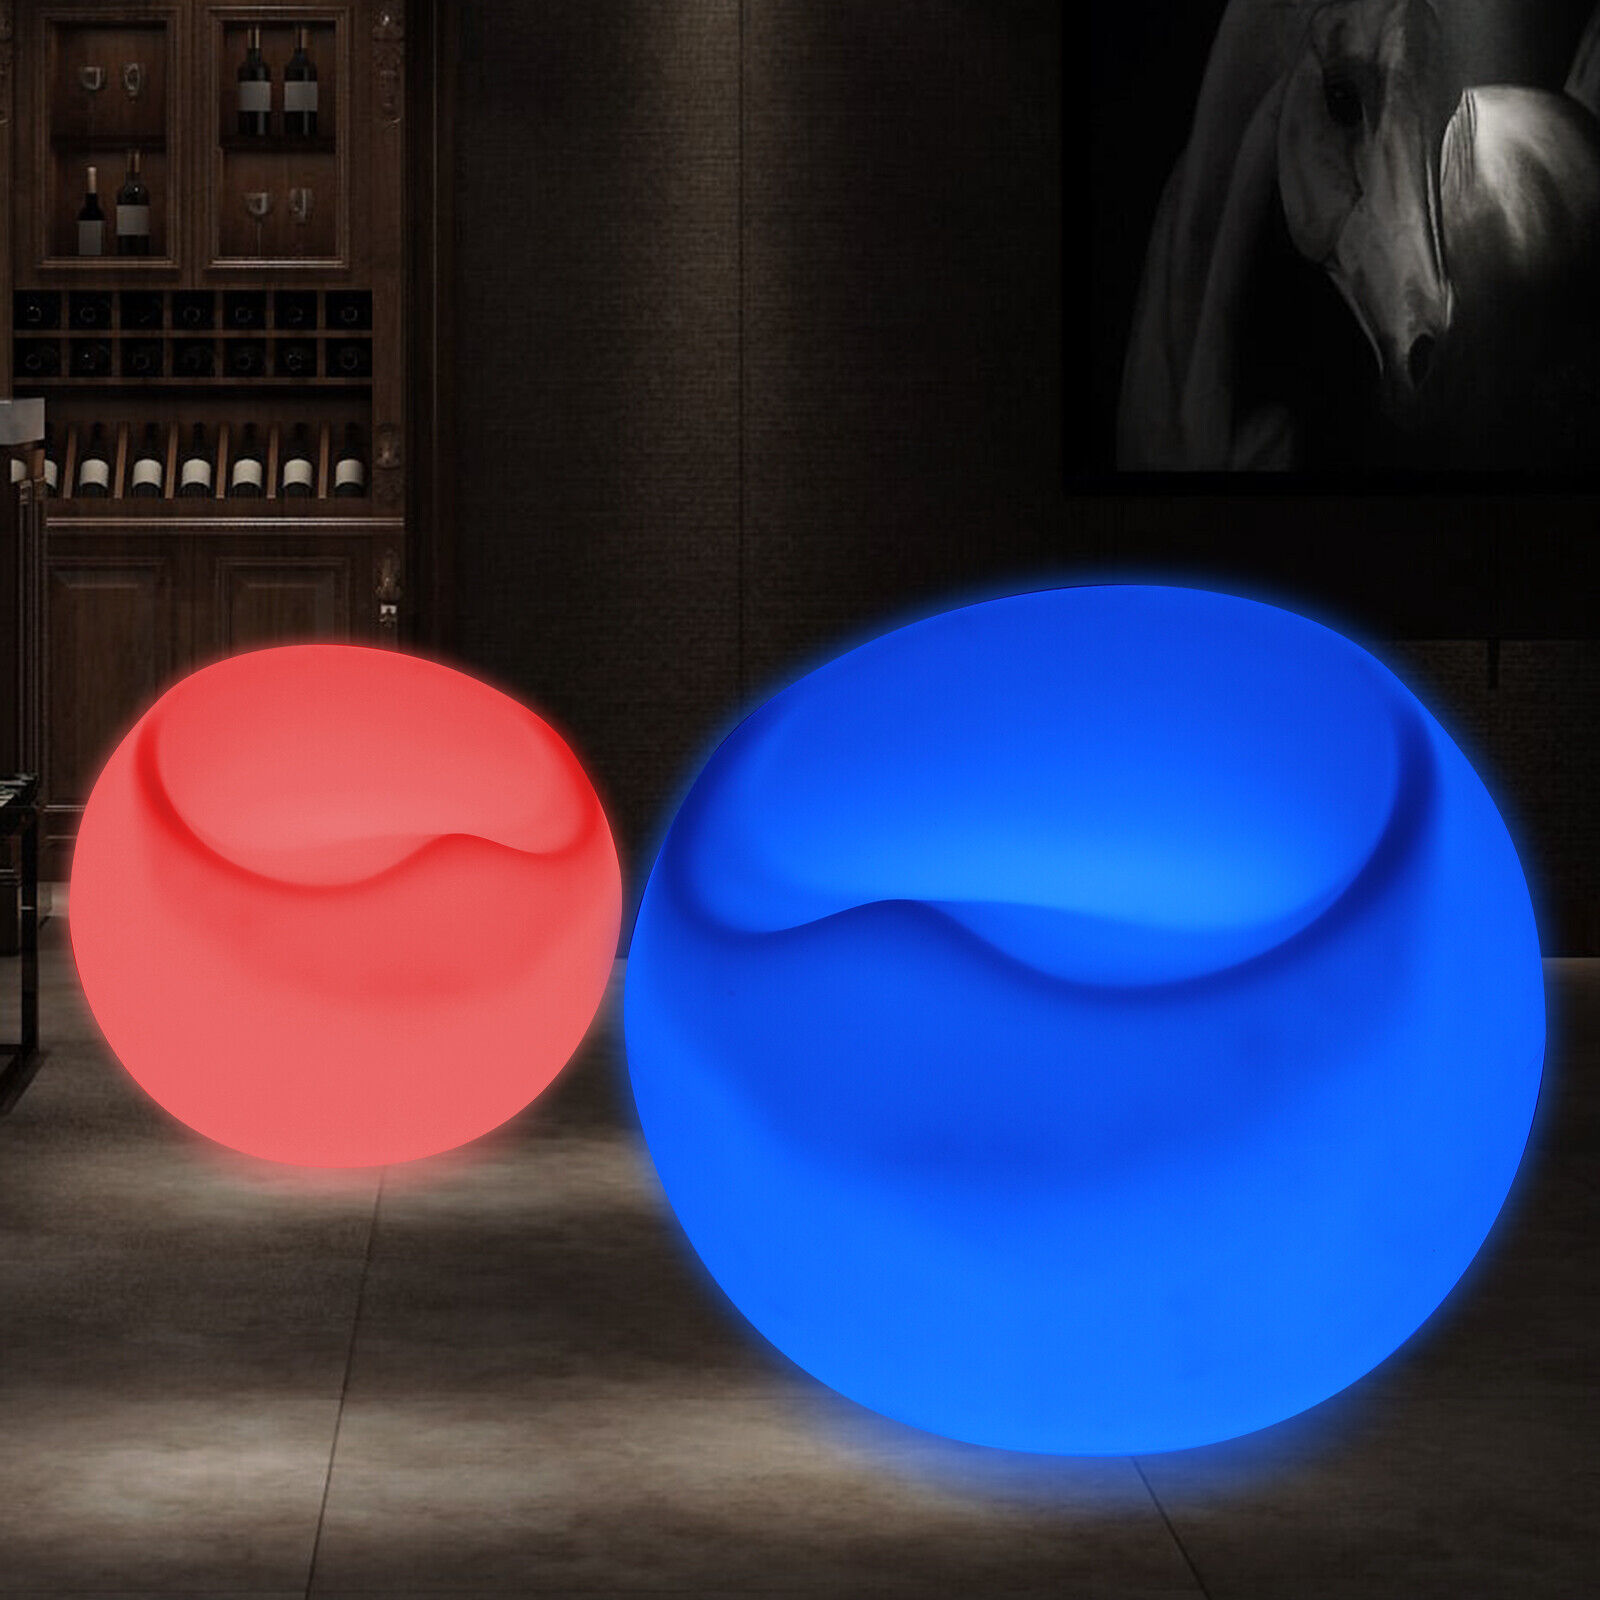 Changing LED Light Up Furniture Round Egg Shape Chair Pub Club Lounge Party Seat 2